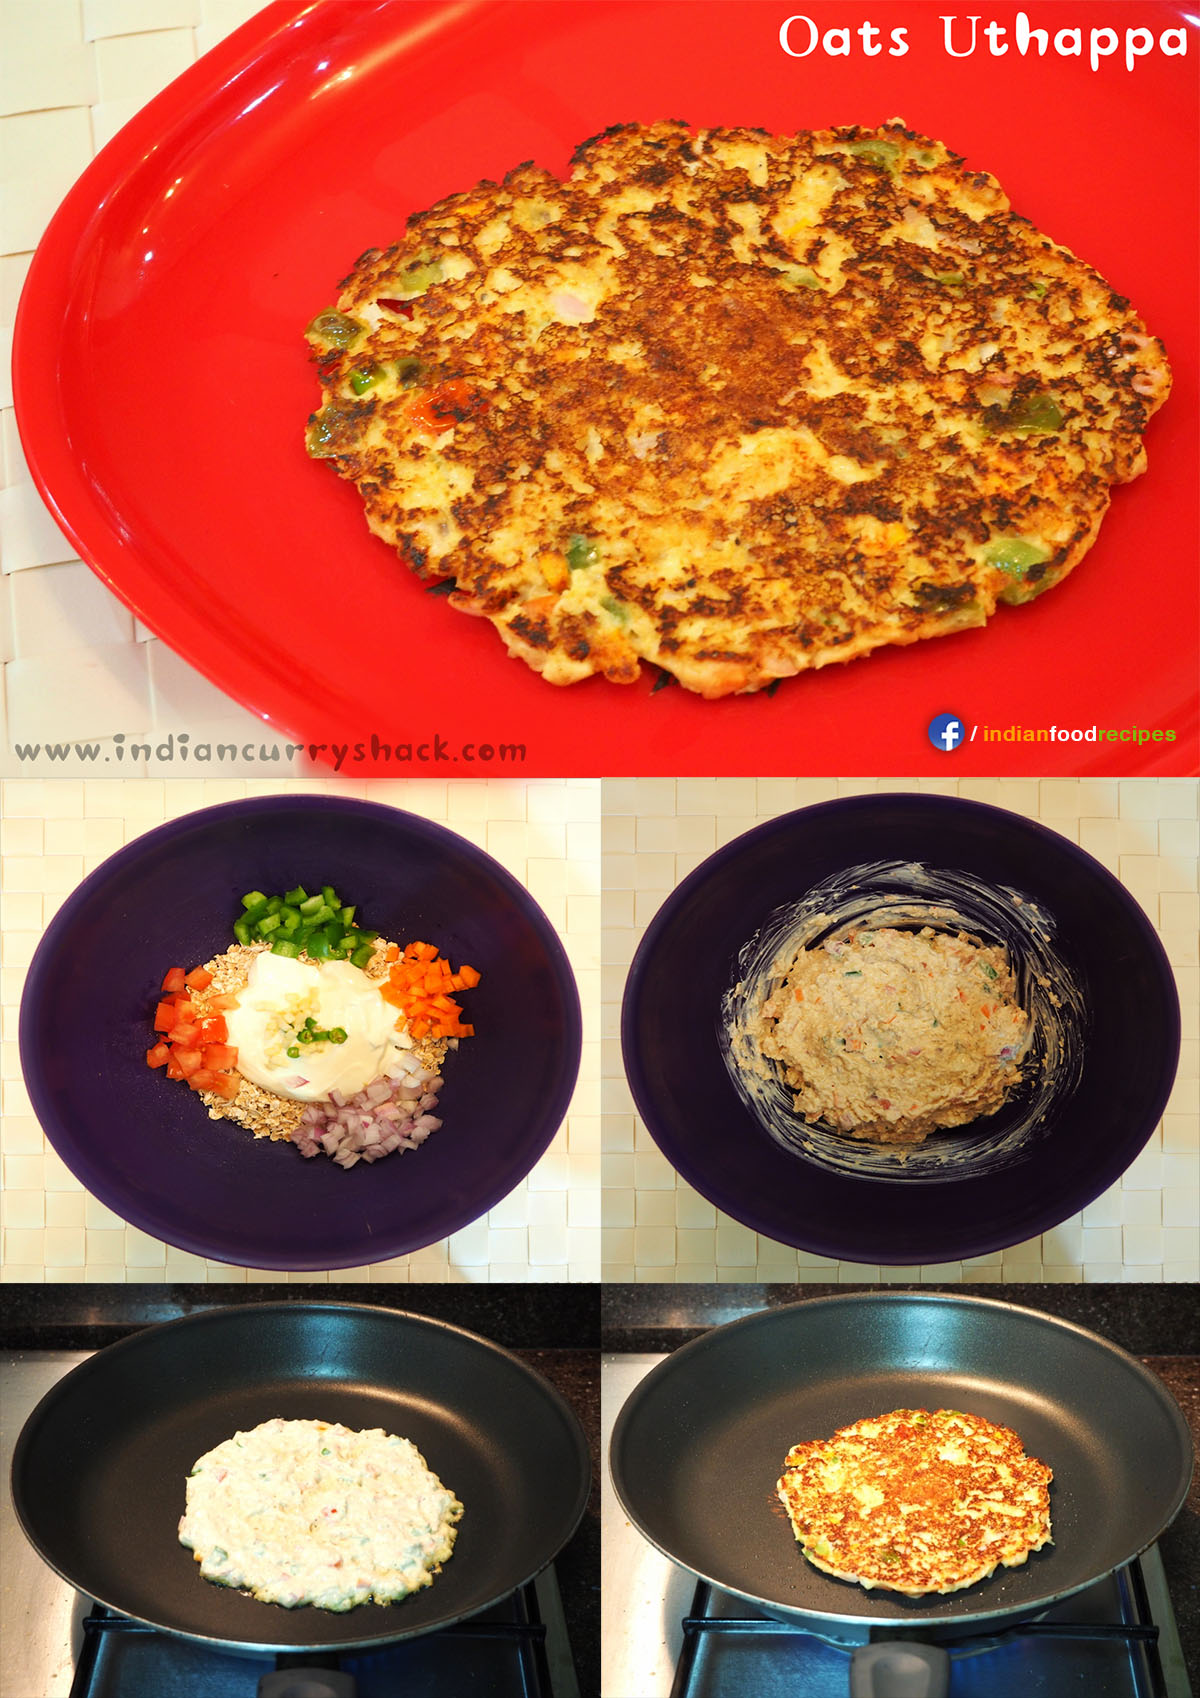 Oats Uttapam or Uthappa (Indian Pancake) recipe step by step